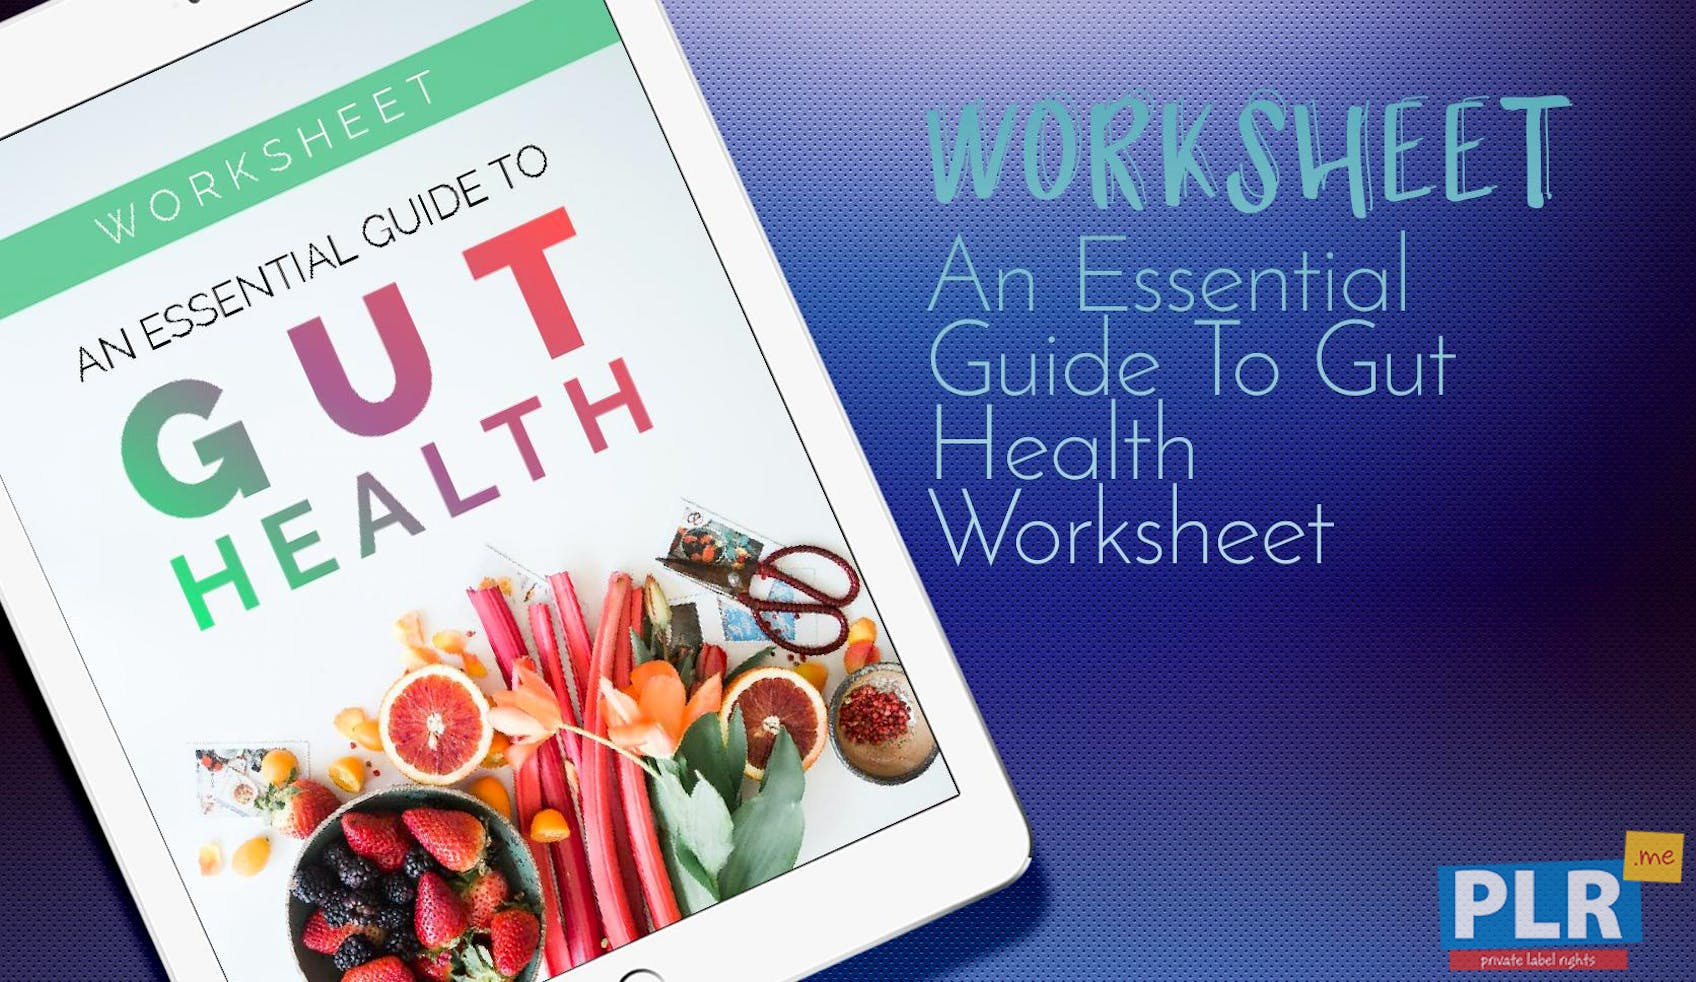 An Essential Guide To Gut Health Worksheet